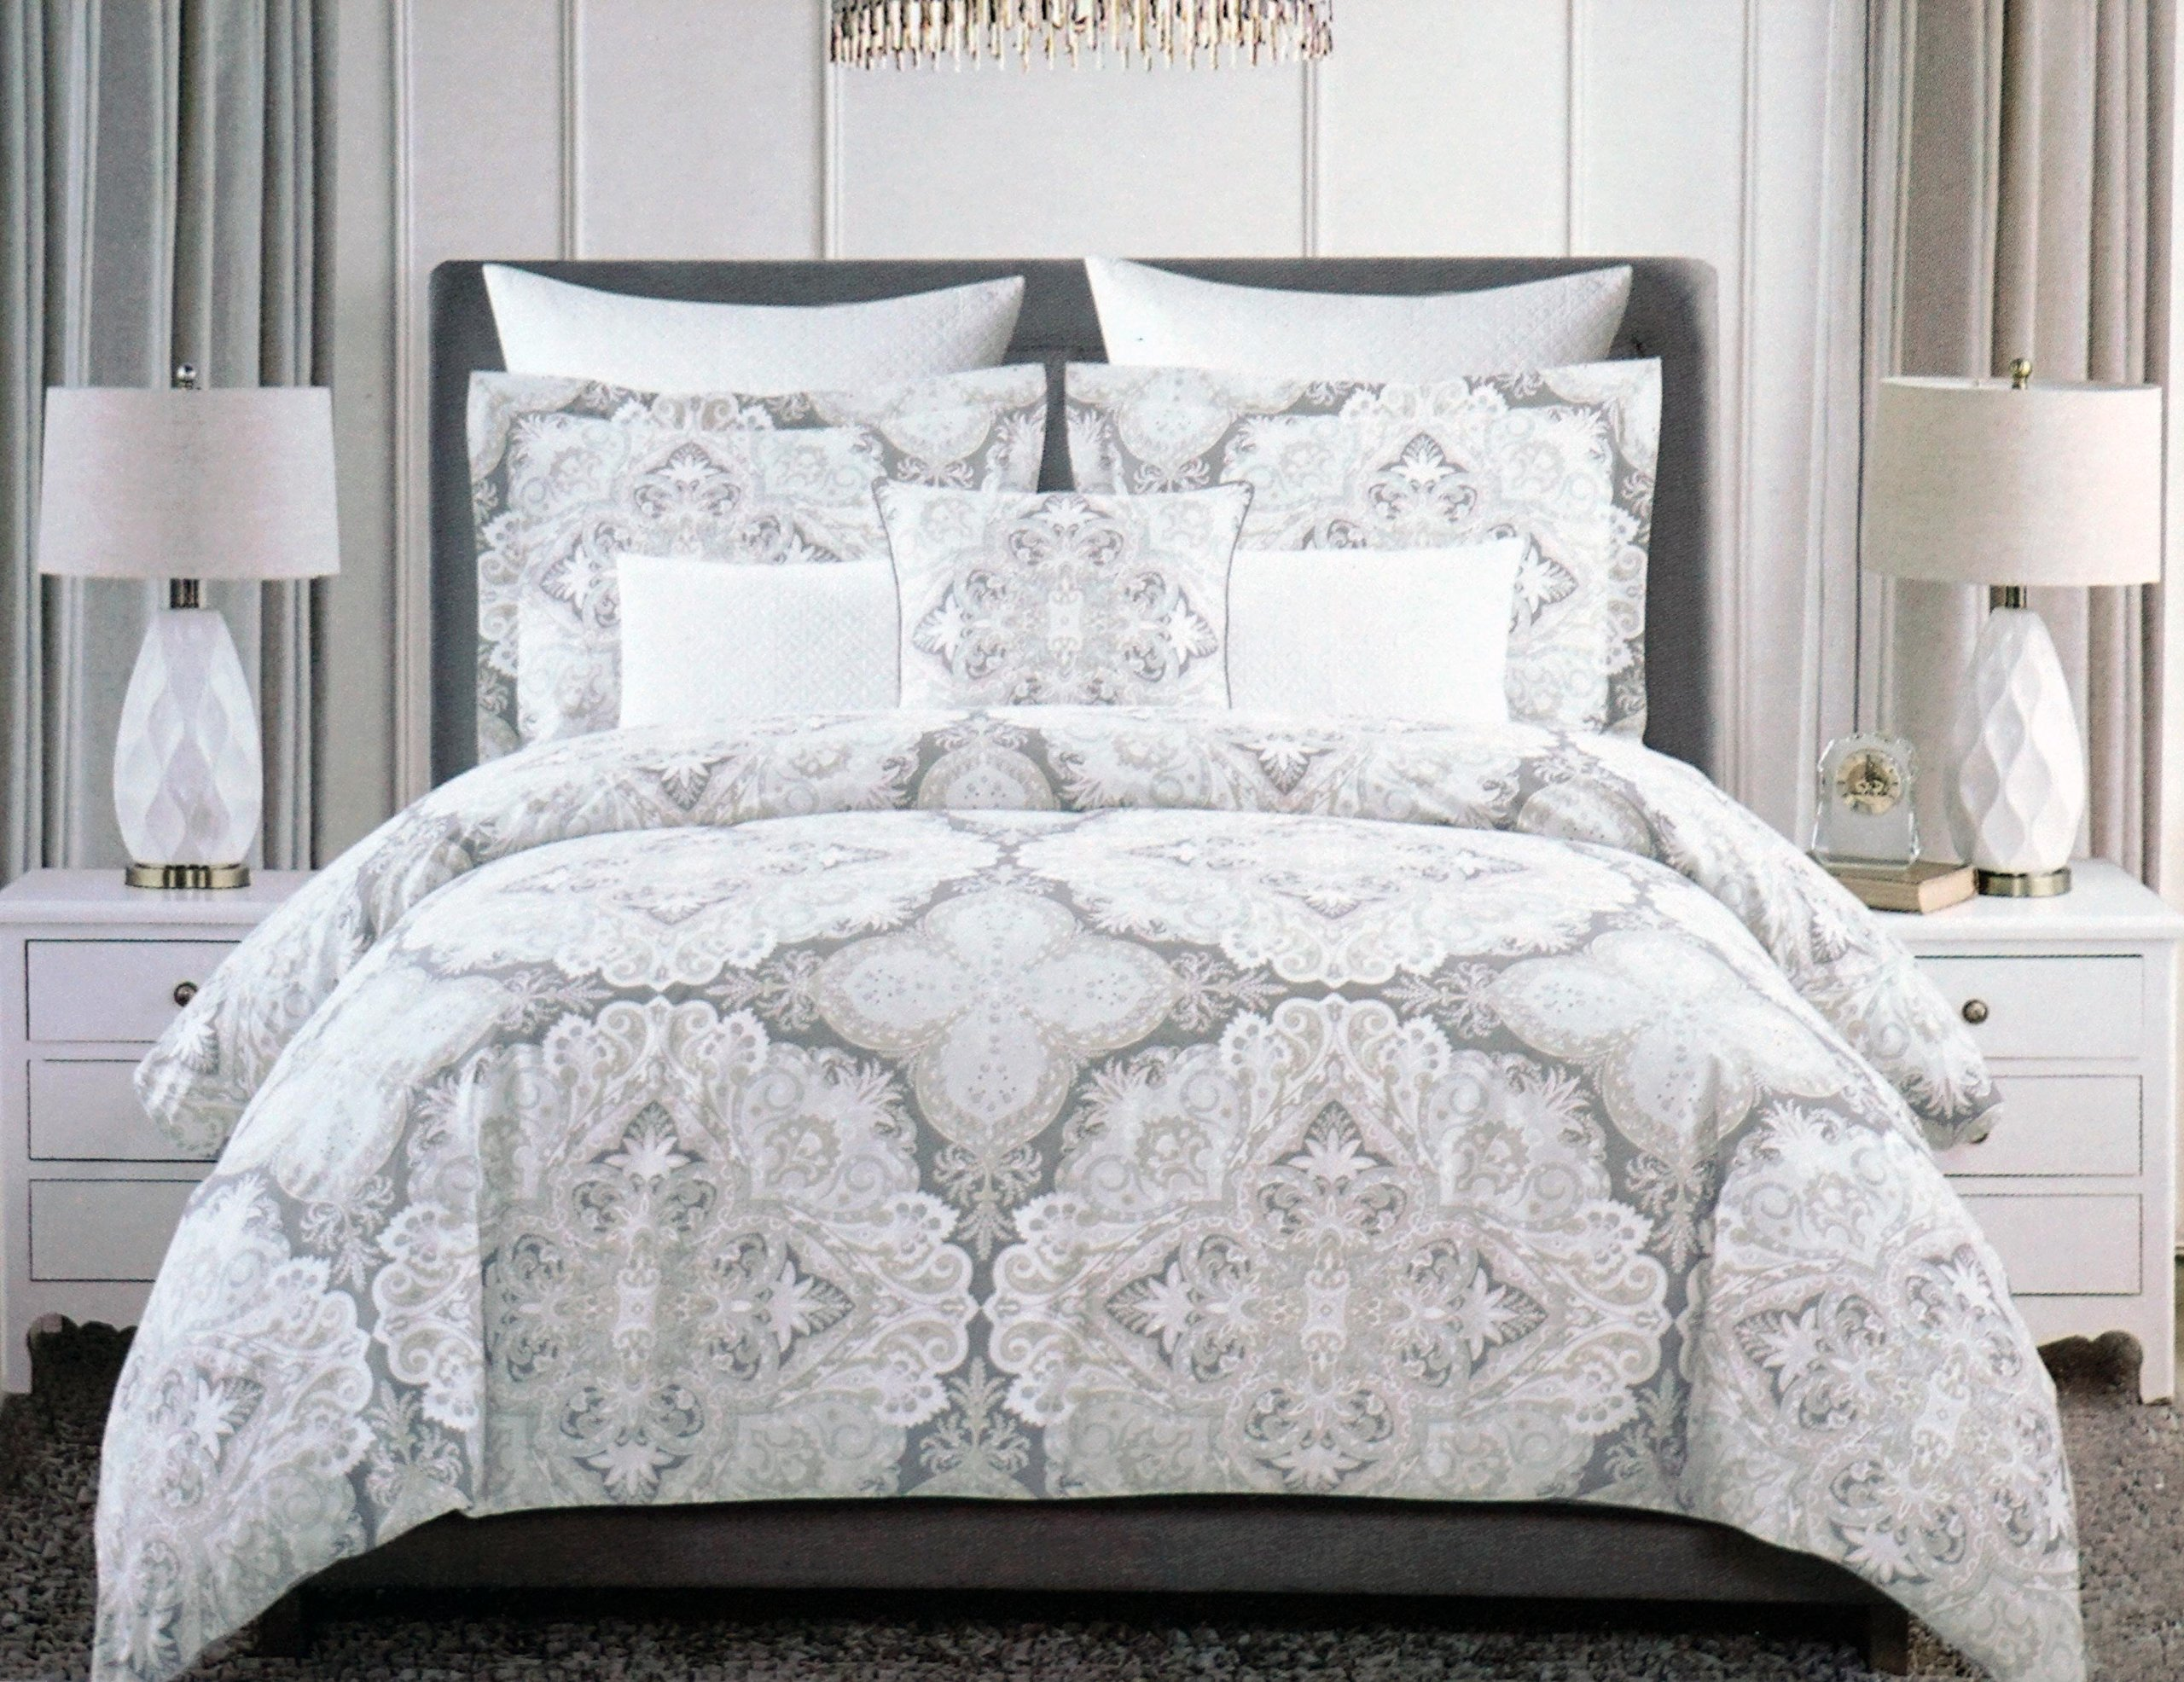 Buy Tahari Bedding 3 Piece King Duvet Cover Set Floral Paisley Medallion Pattern In Shades Of Gray Beige Tan White In Cheap Price On Alibaba Com